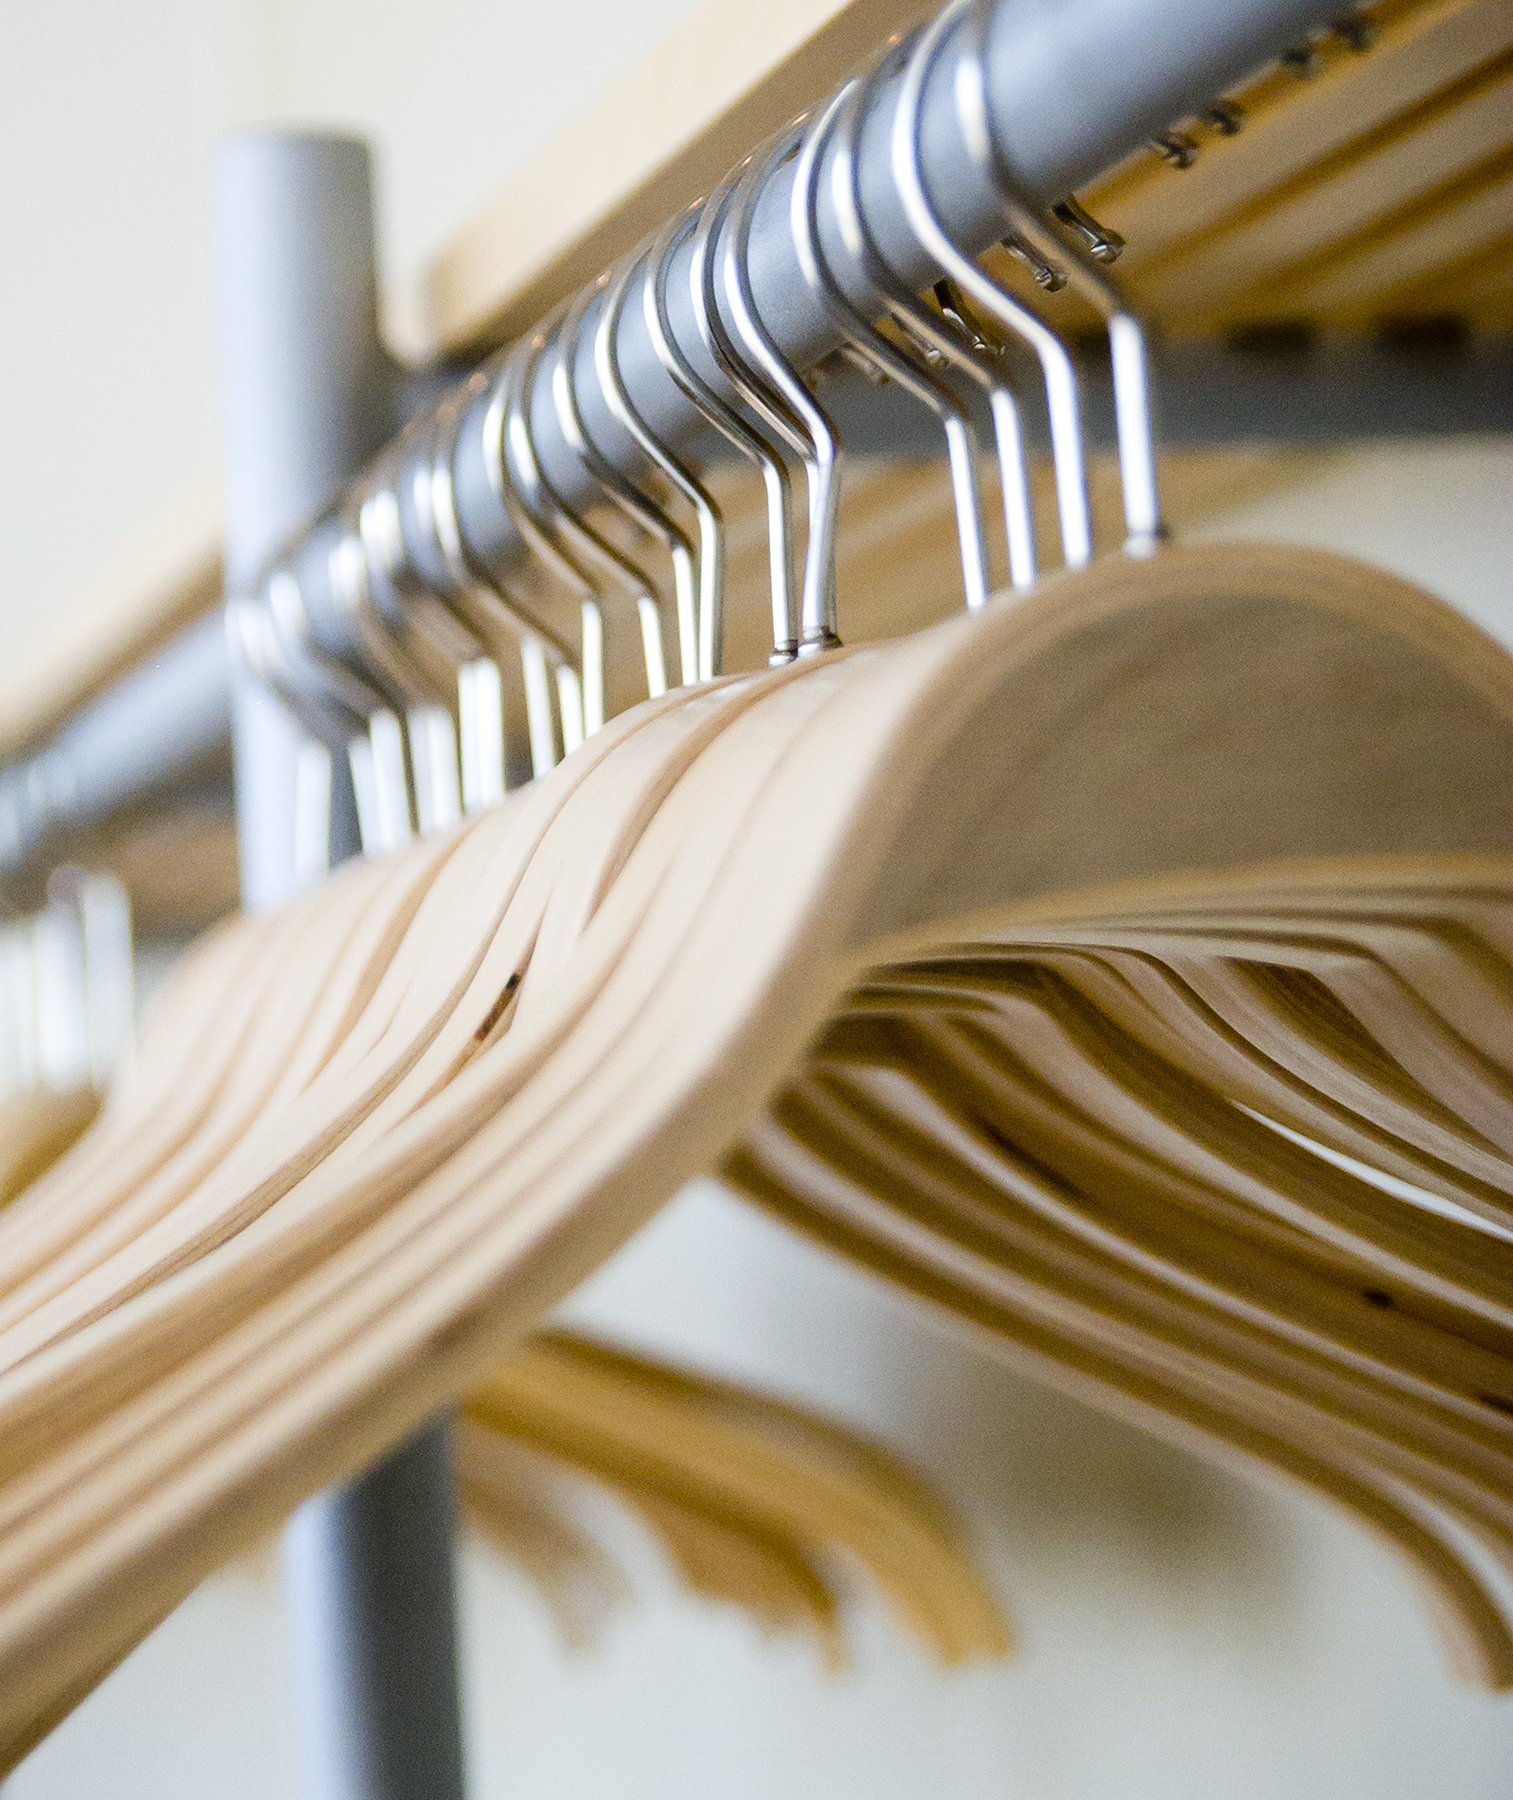 Wood hangers in a closet